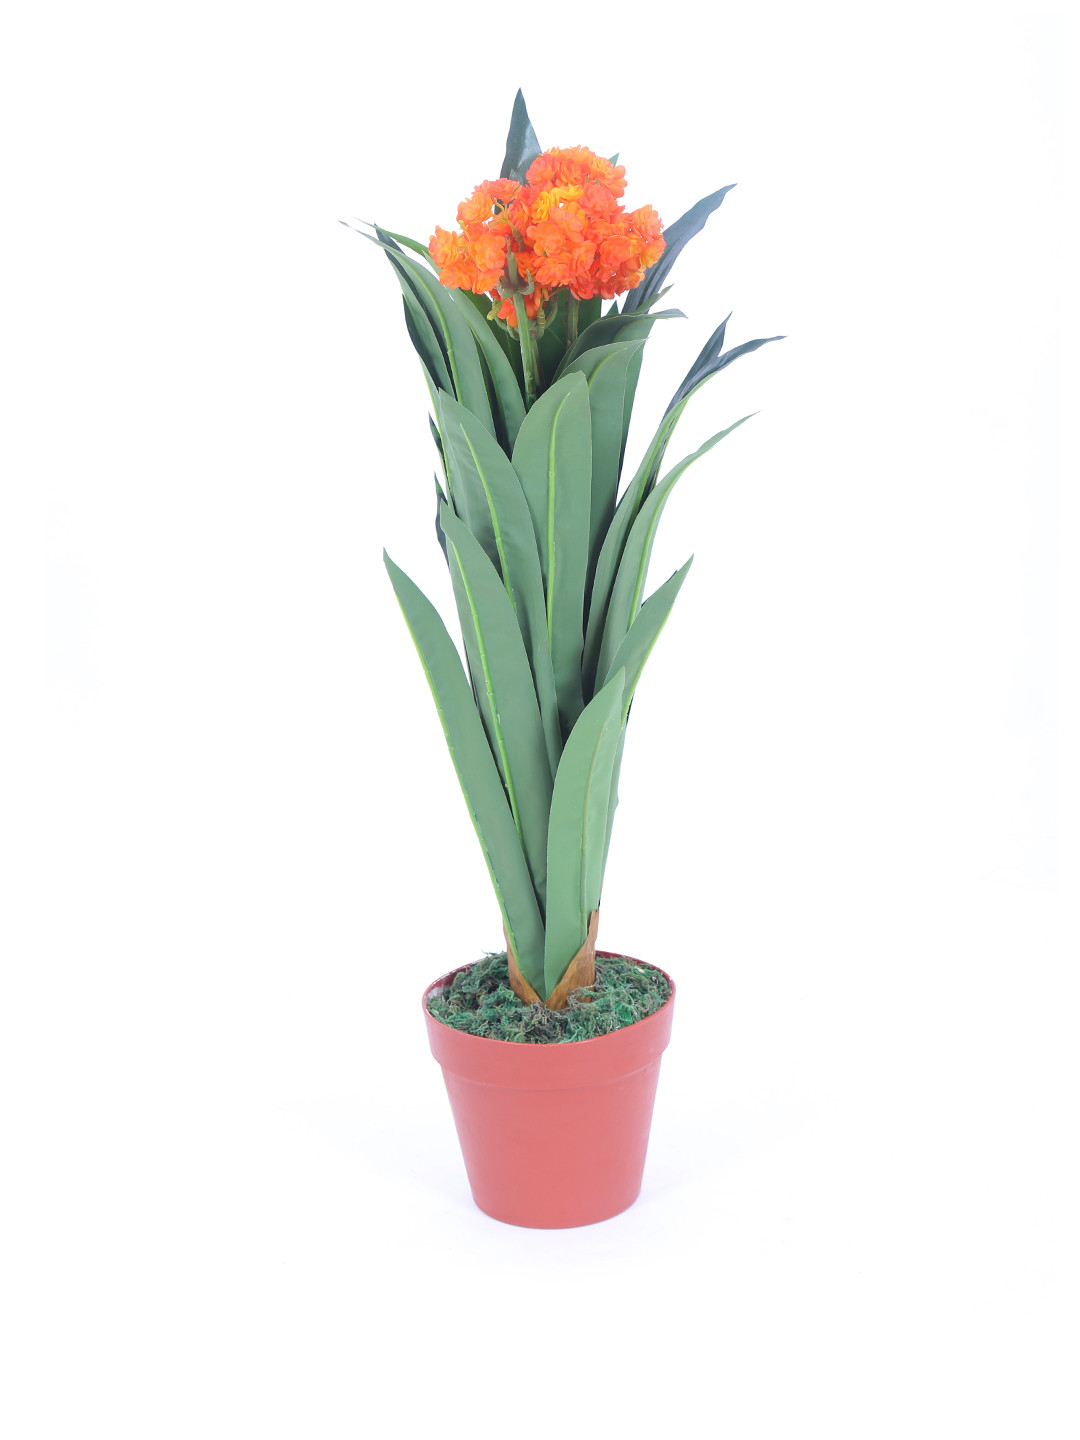 Flower Vase Online India Of Artificial Artificial Flowers and Plants Shirts Buy Artificial Throughout Decorative Artificial Plant